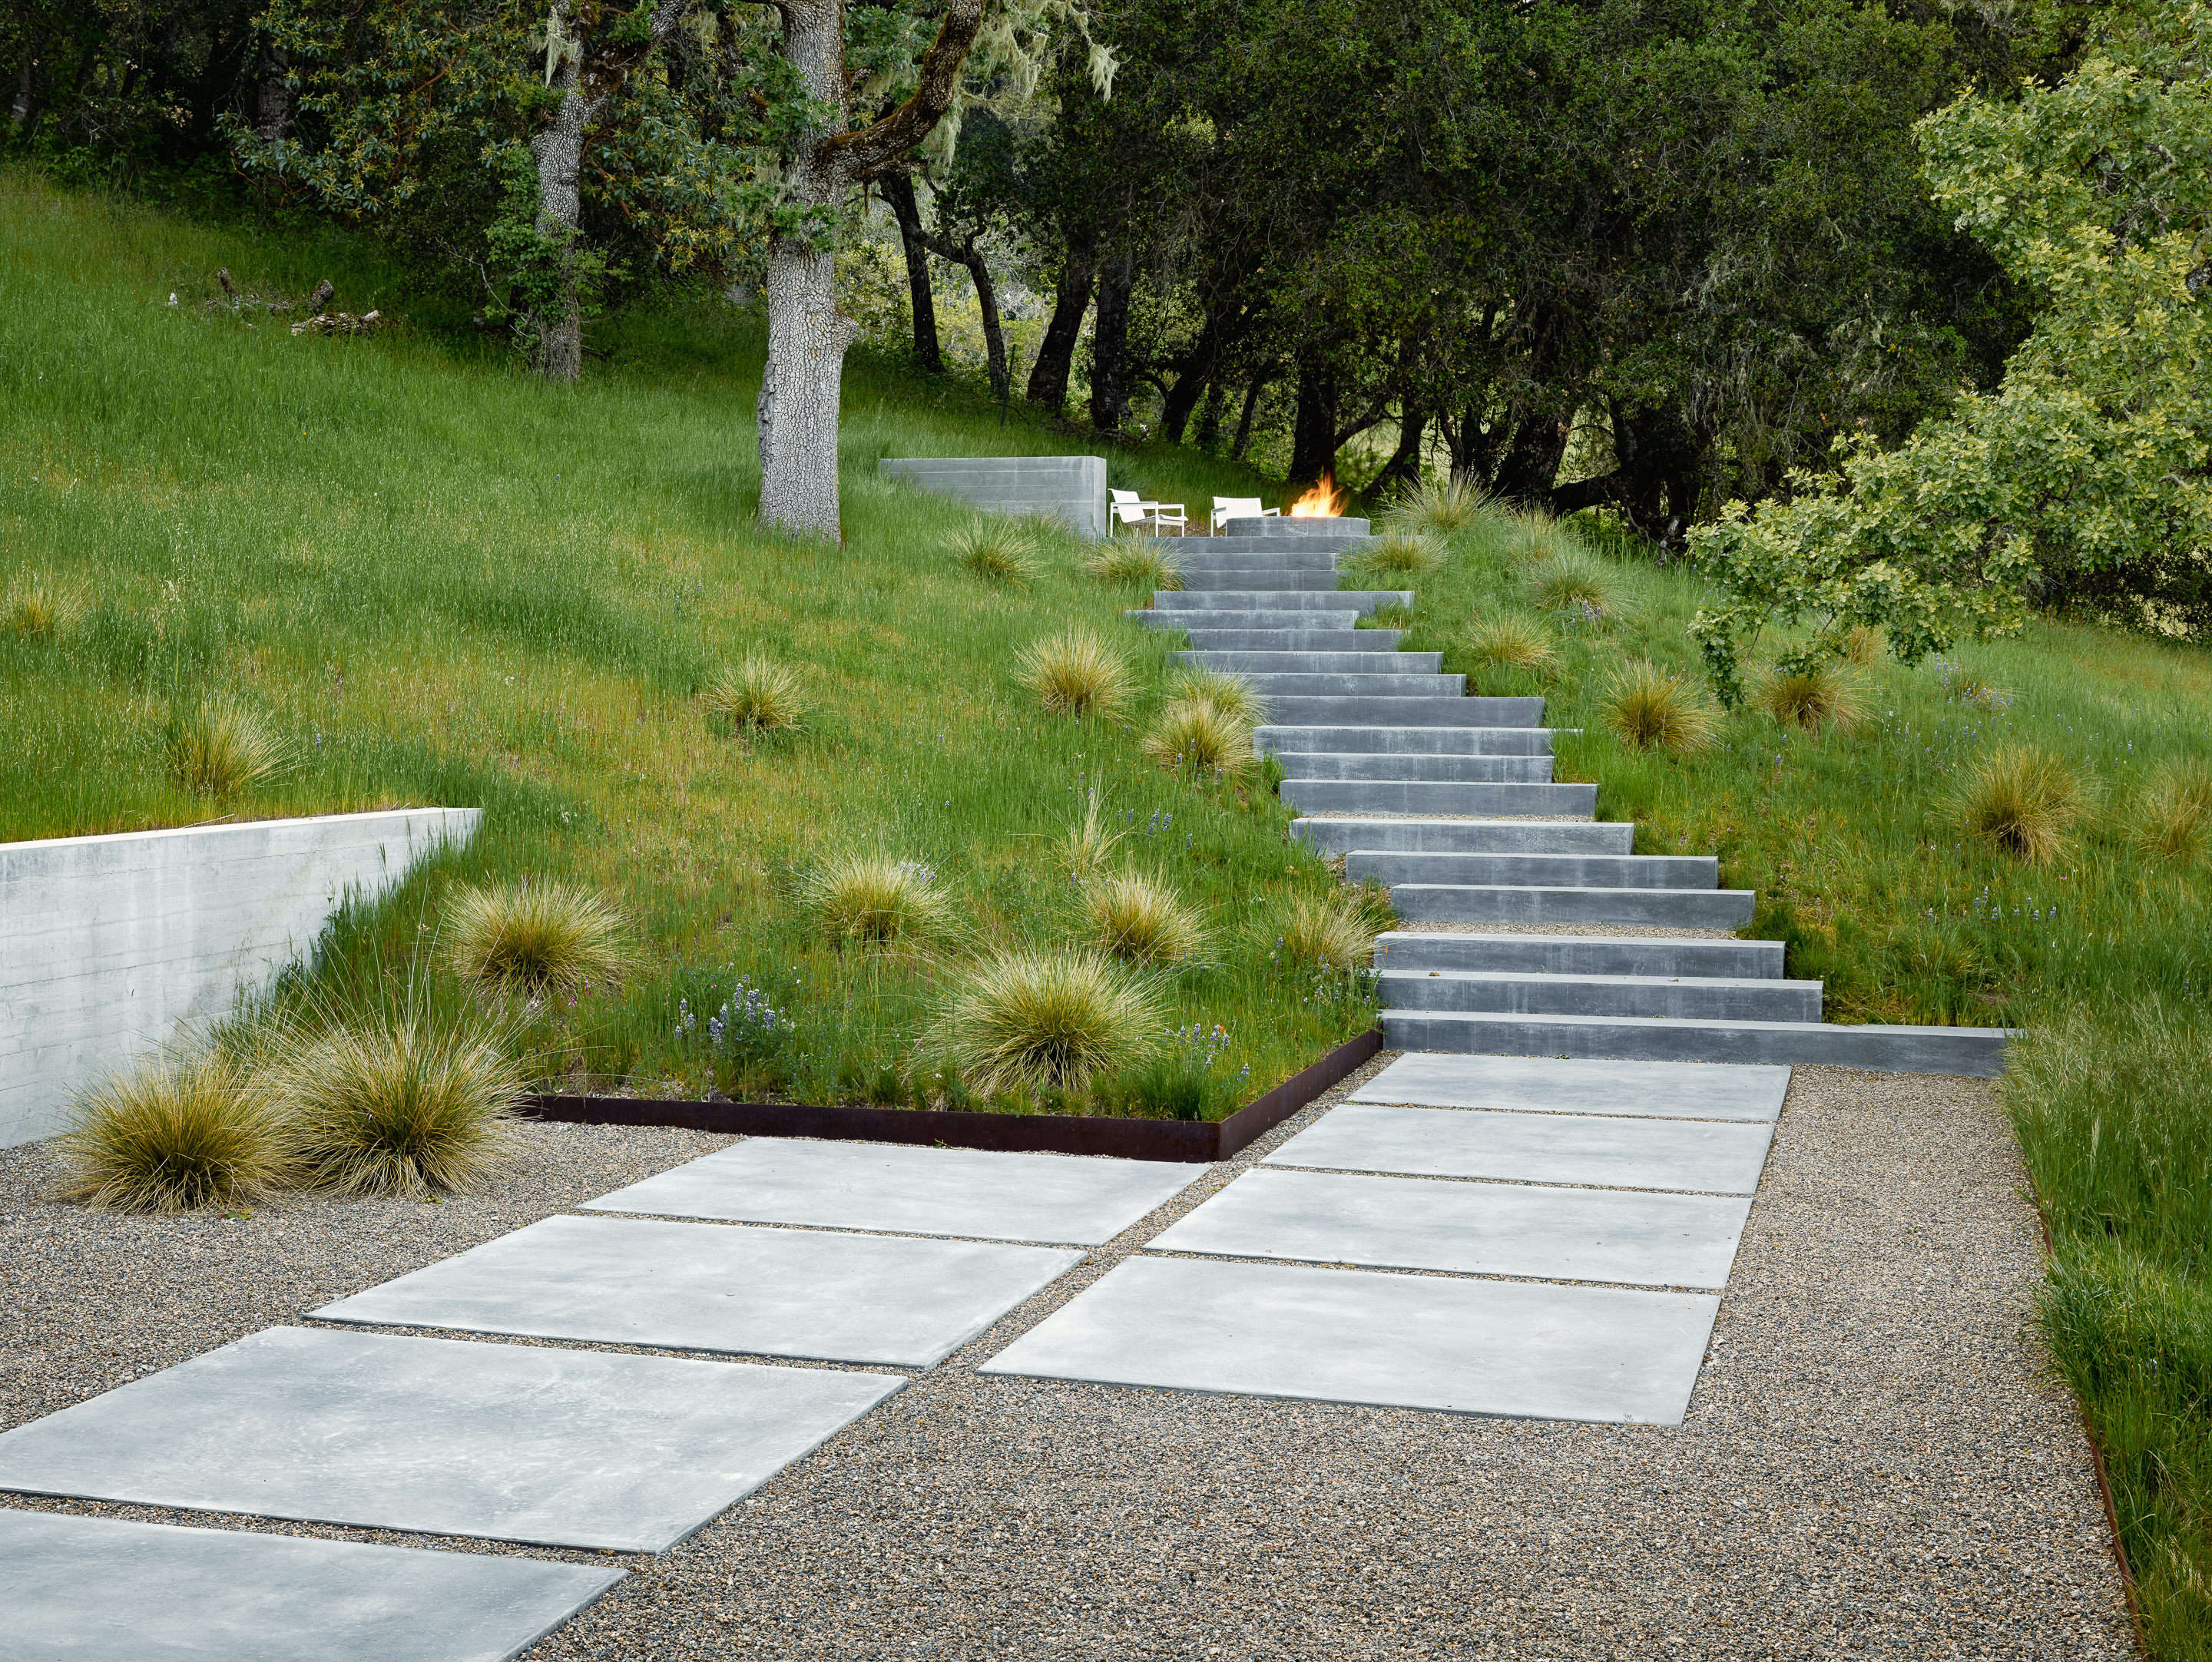 Hardscaping 101 Filler Stones For Paths - Gardenista